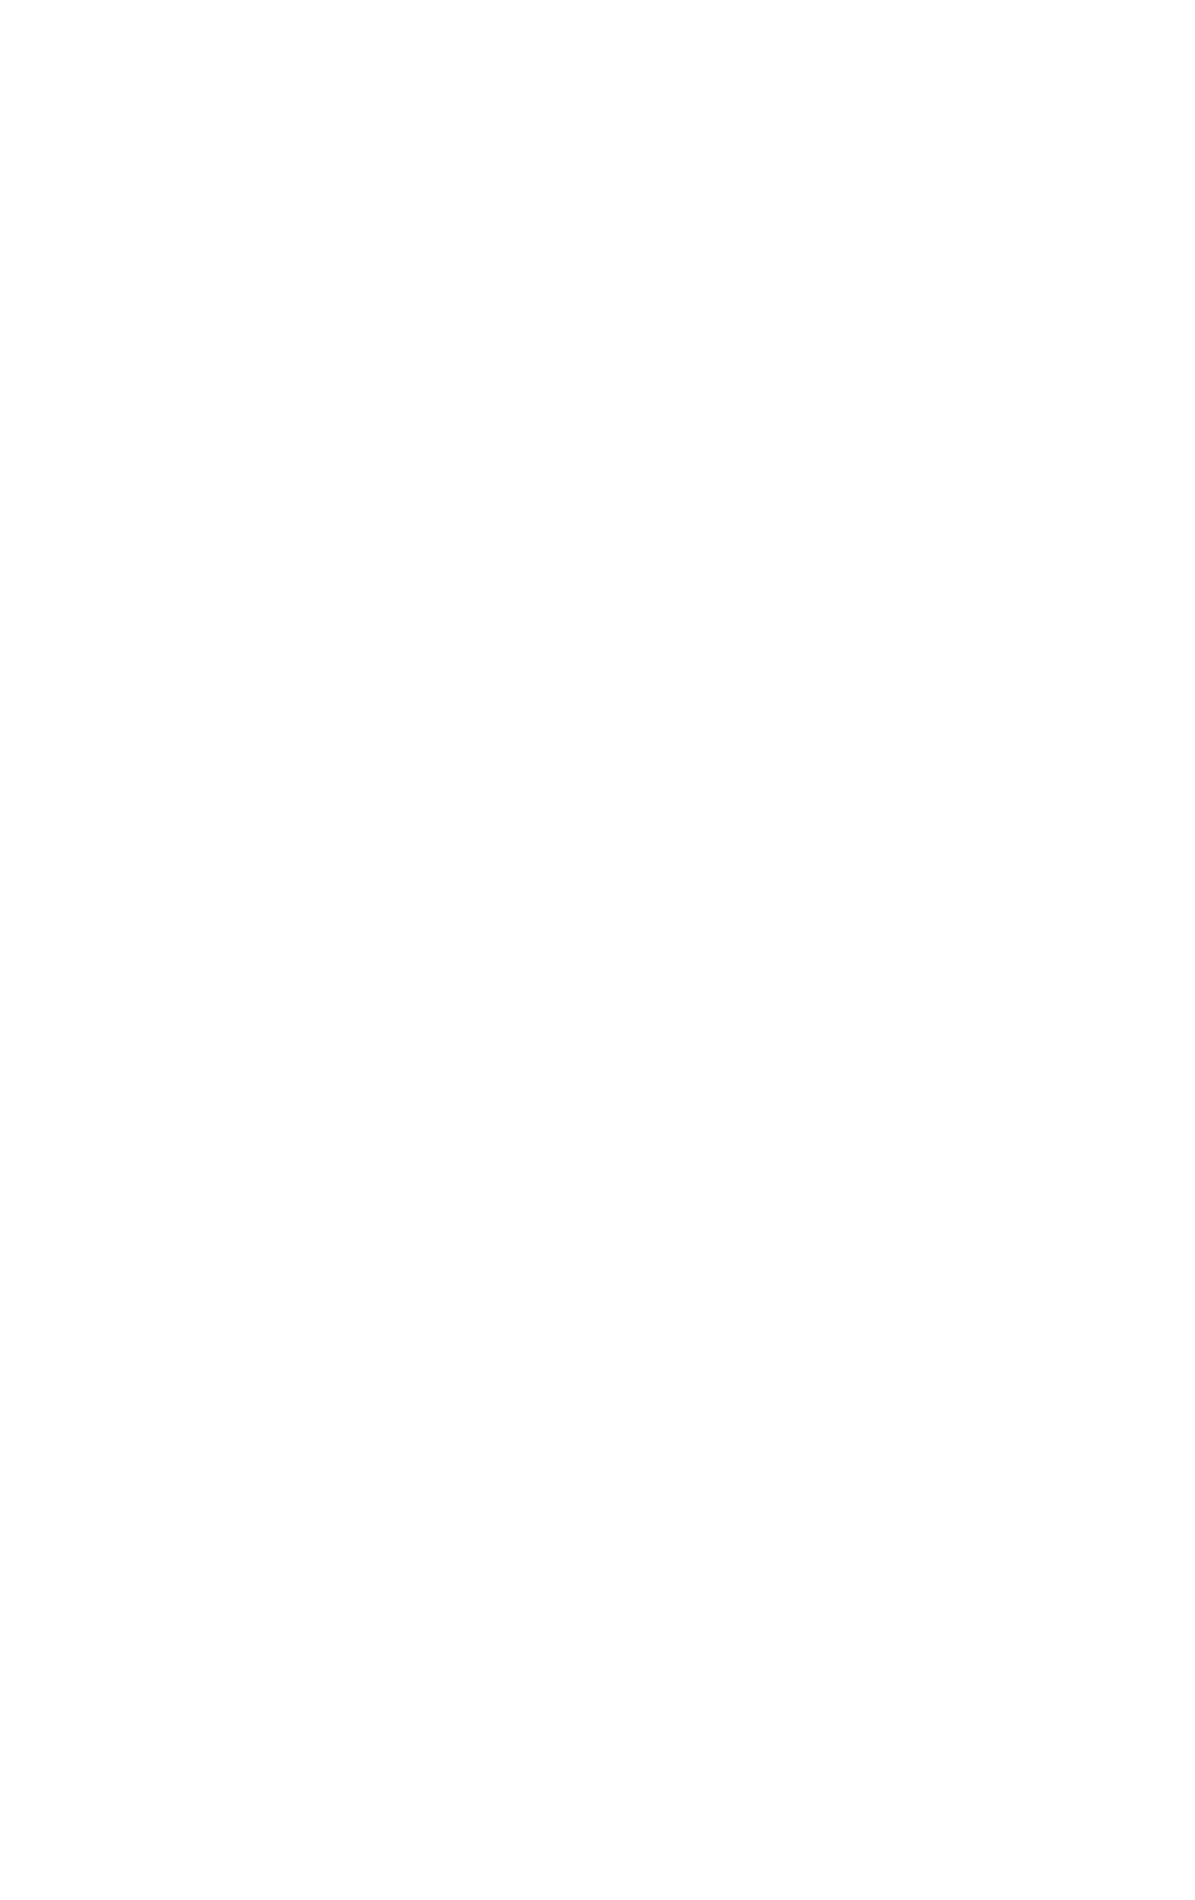 Highlights differences